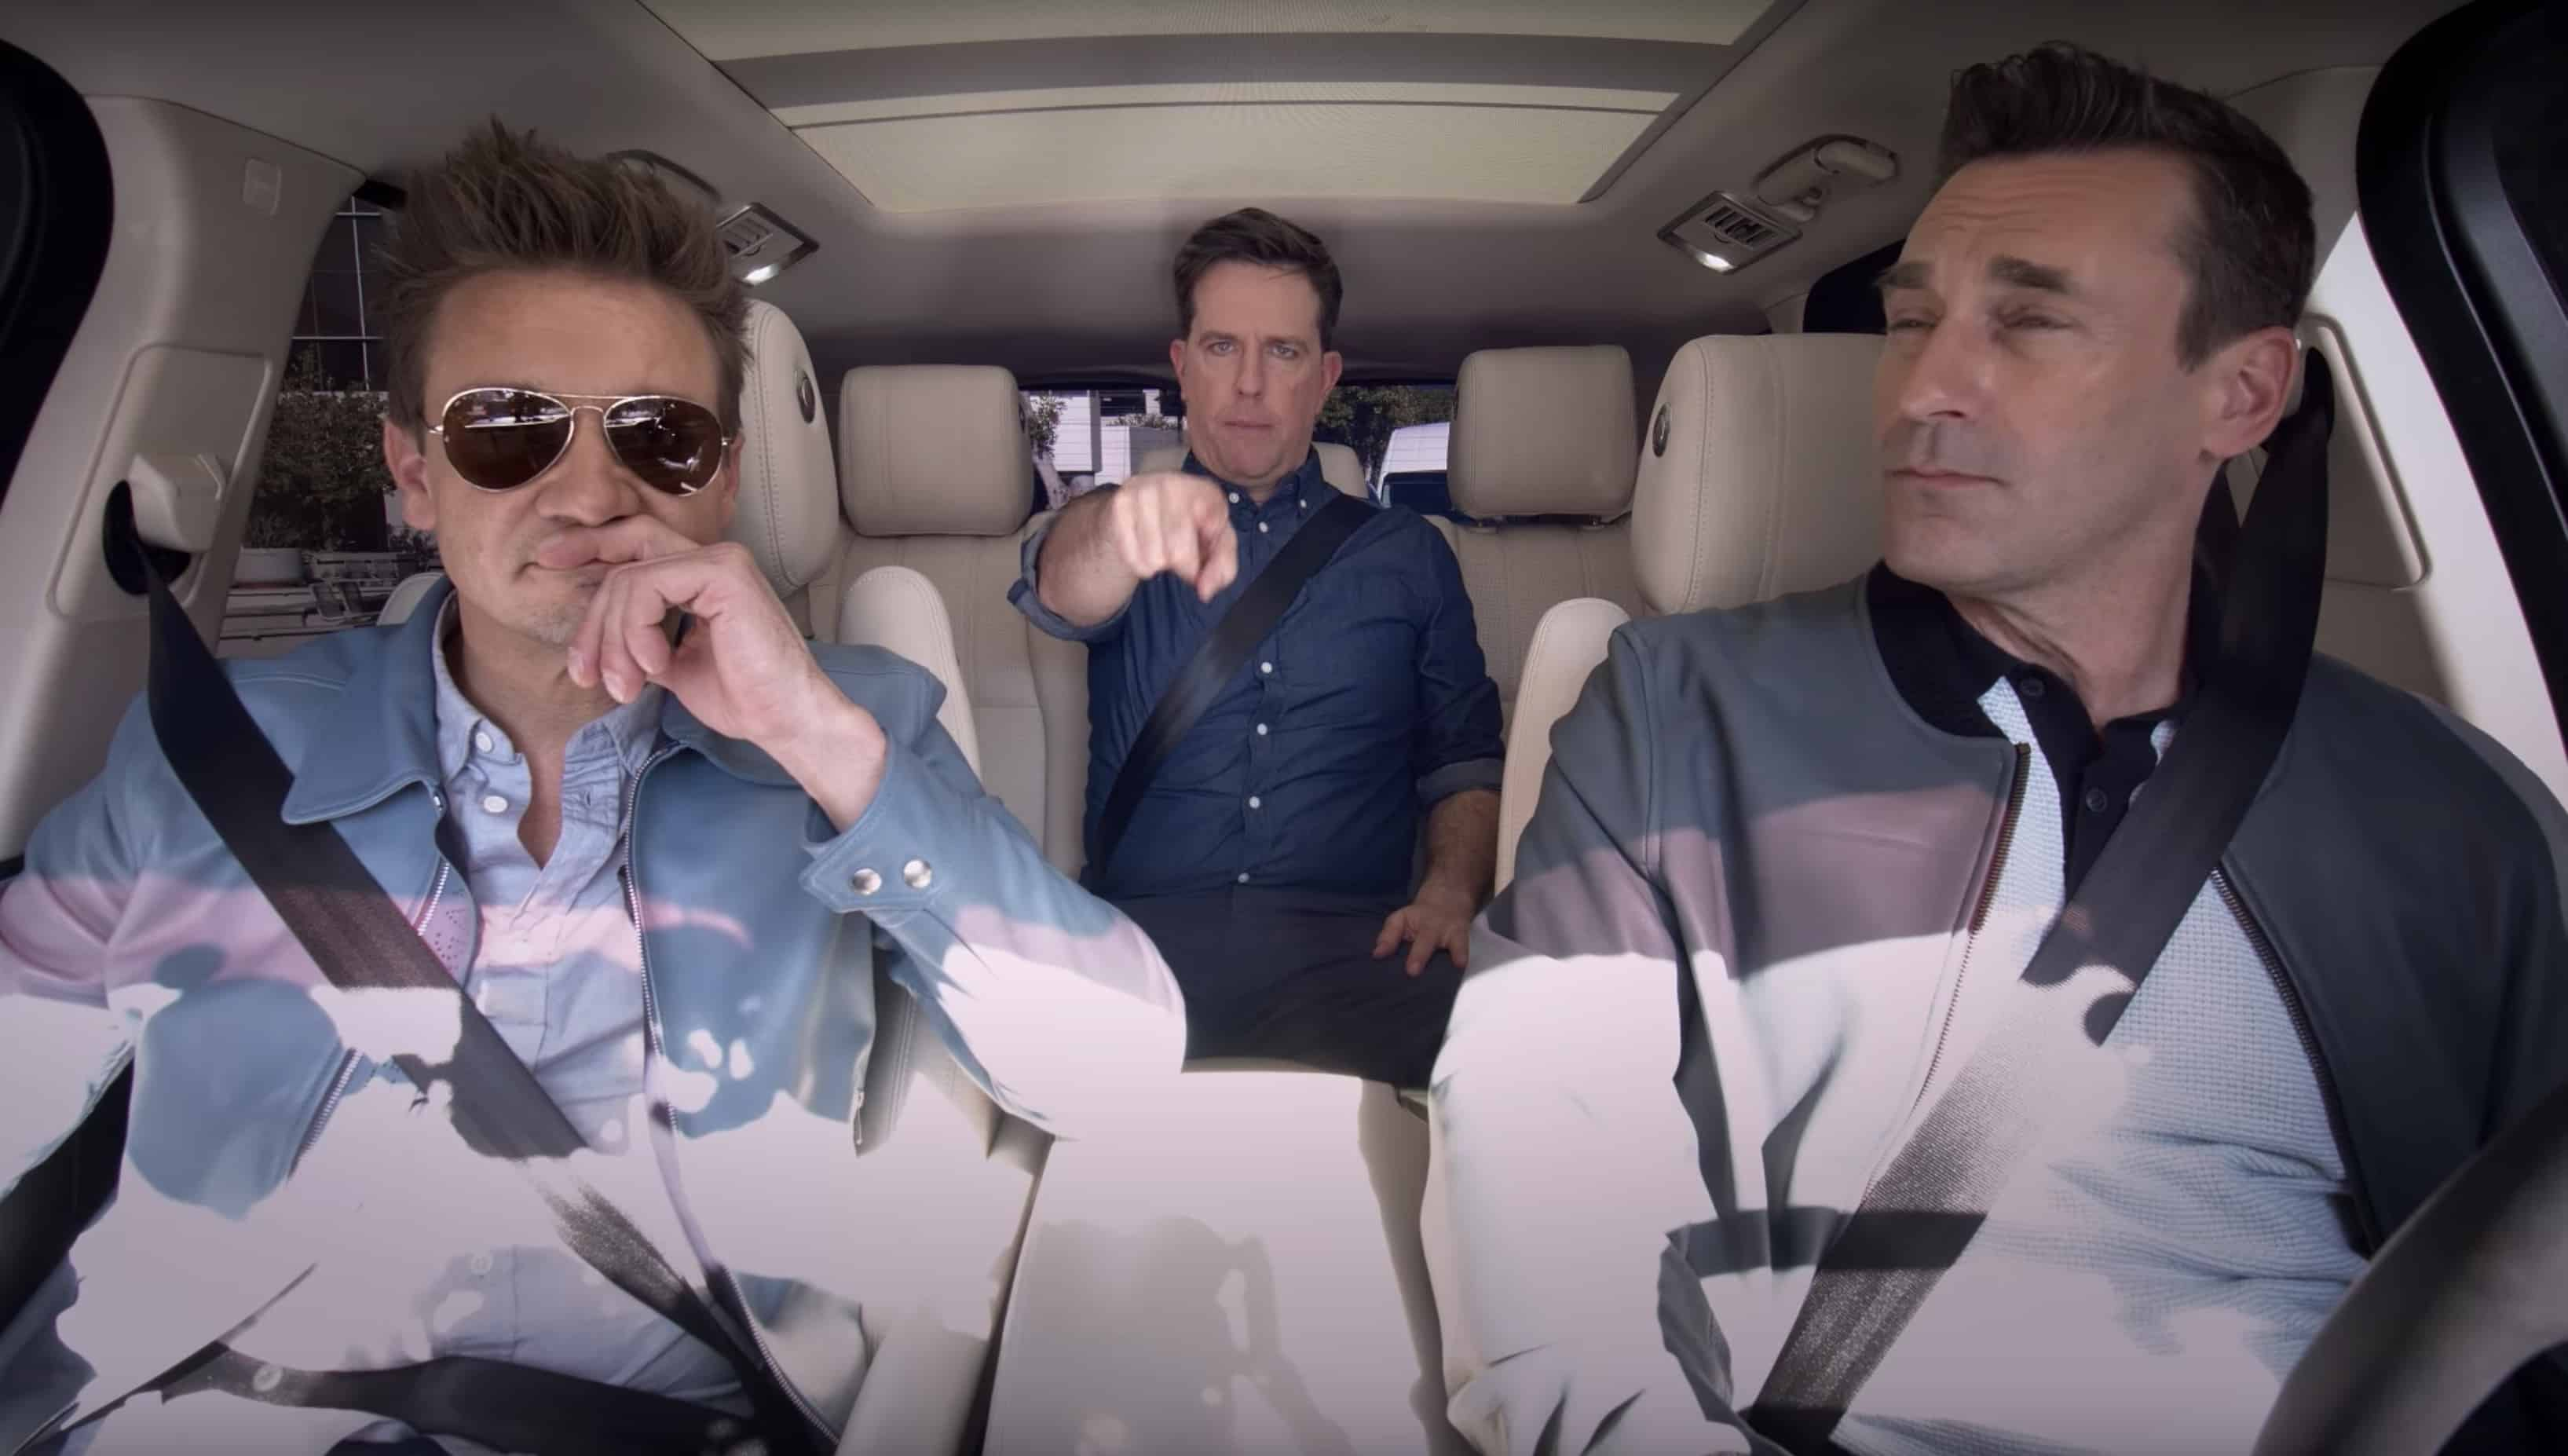 We all know Ed Helms can sing, but what about his Tag castmates? Find out in the new Carpool Karaoke teaser.